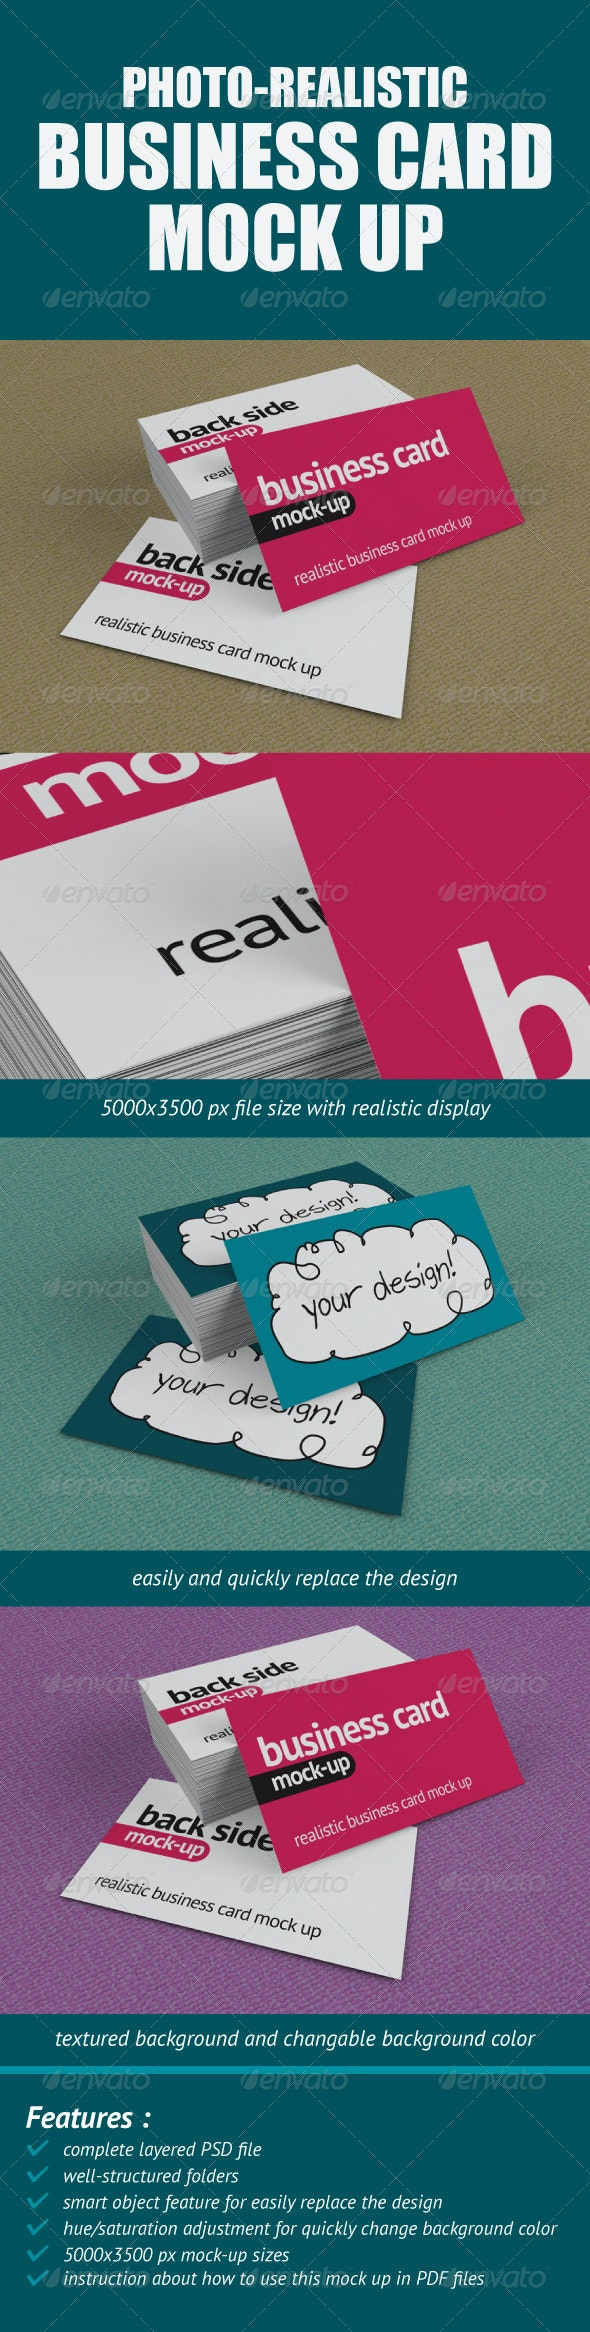 Photo-Realistic Business Card Mock-Up - Business Cards Print